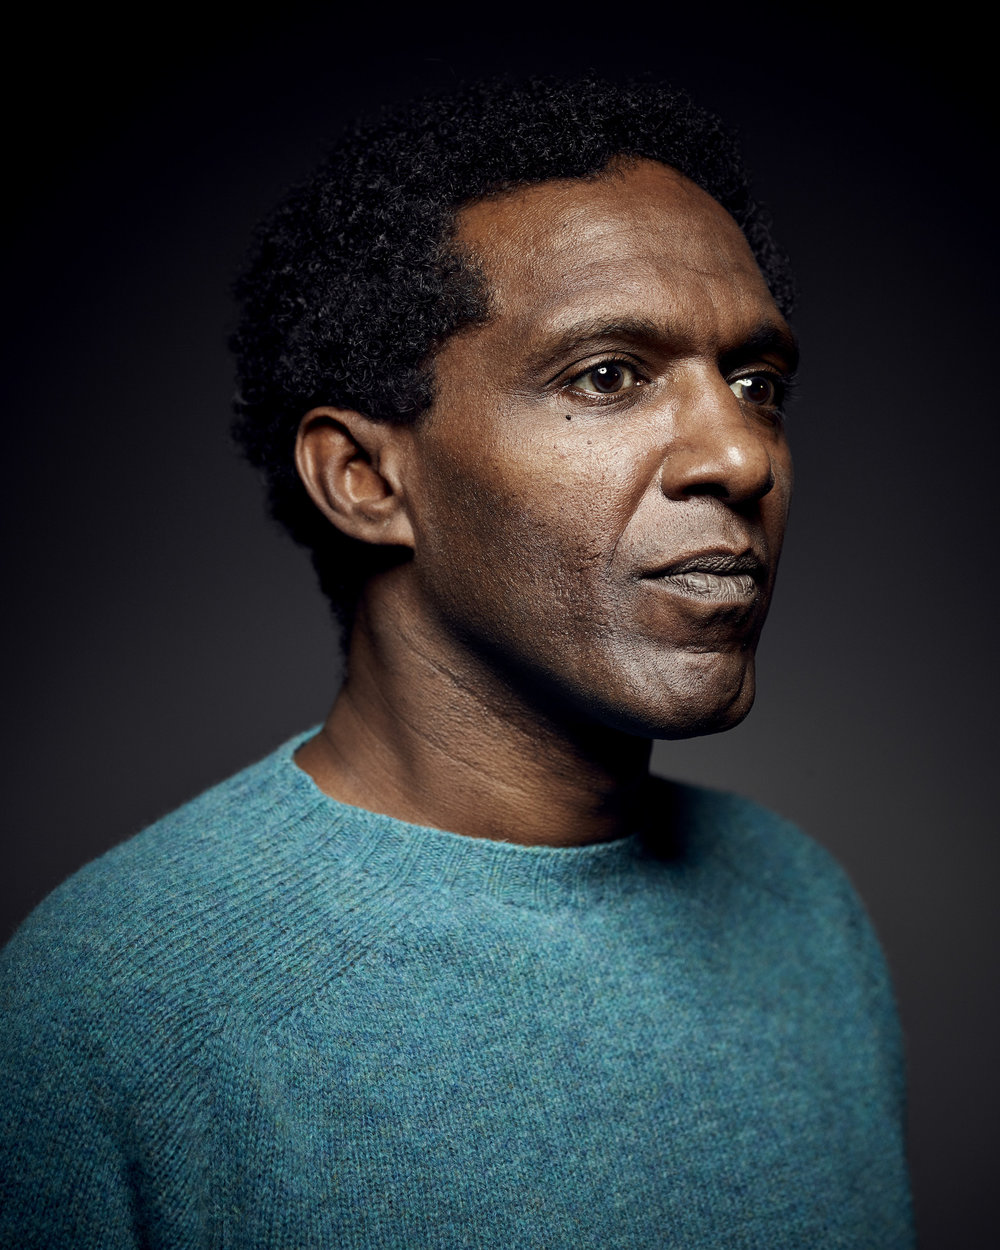 - It's a treat to be able to host someone such as Lemn Sissay, who is considered a national treasure in his home country, the UK. Lemn, as you'll discover when we meet him, means